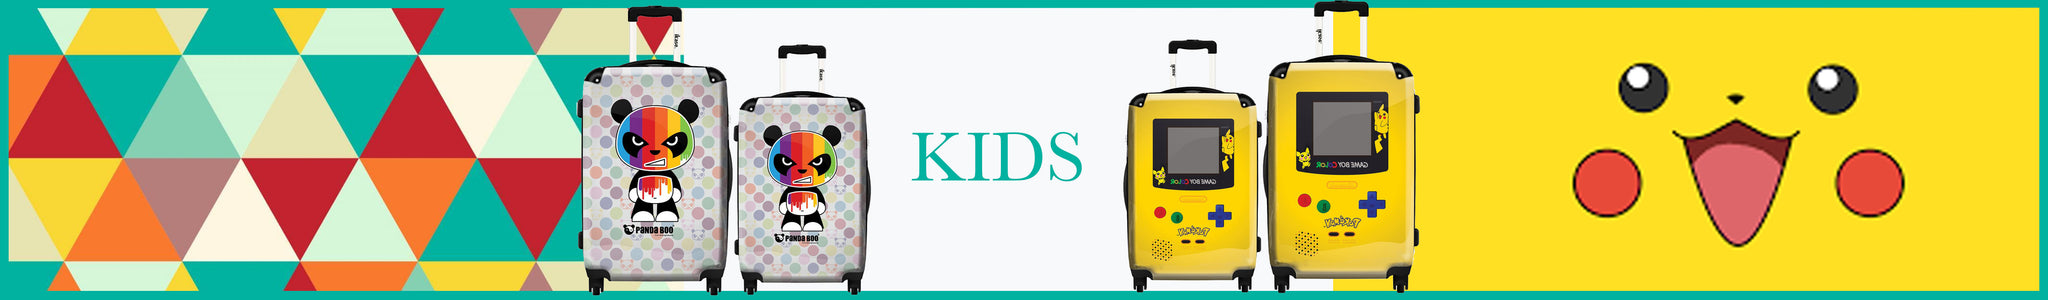 kids suitcase collection by ikaseusa.com